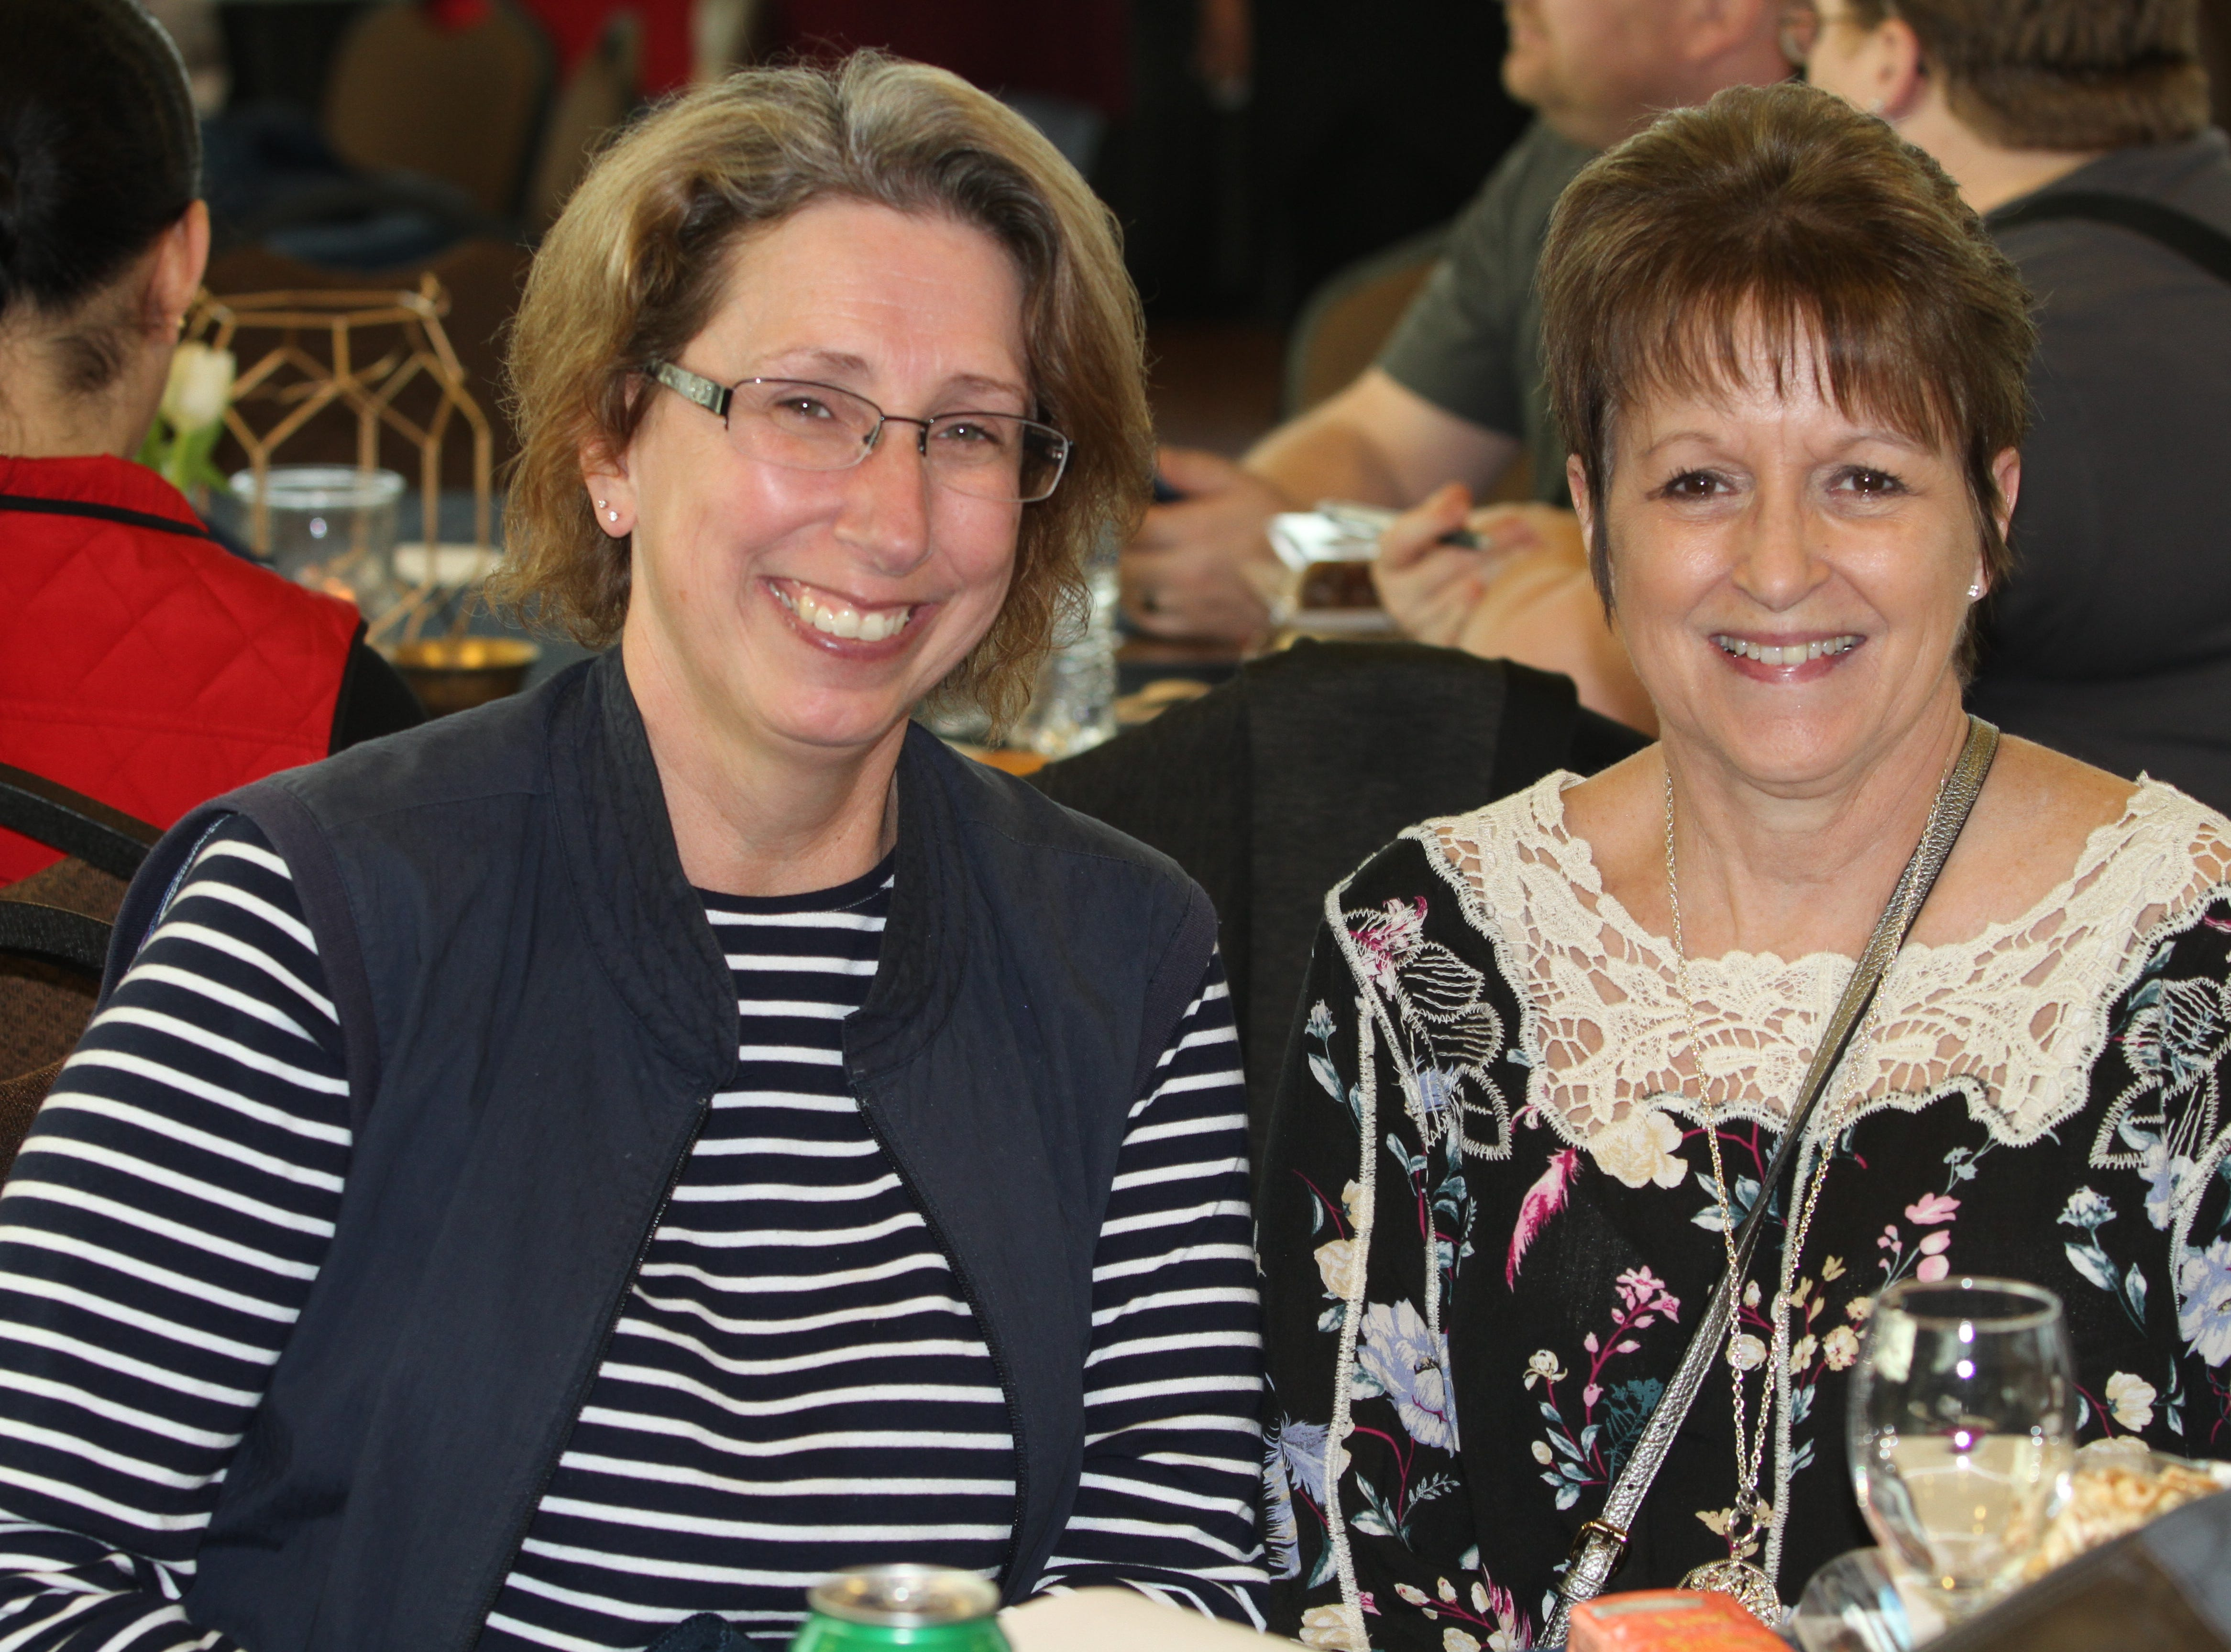 Maureen Hiemstra and Donna Richardson smile during the 7th Annual Chocolate Affair at Wilma Rudolph Event Center Saturday, February 2, 2019 . The sold-out event saw hundreds of guests enjoying chocolate creations from more than a dozen local and national vendors.